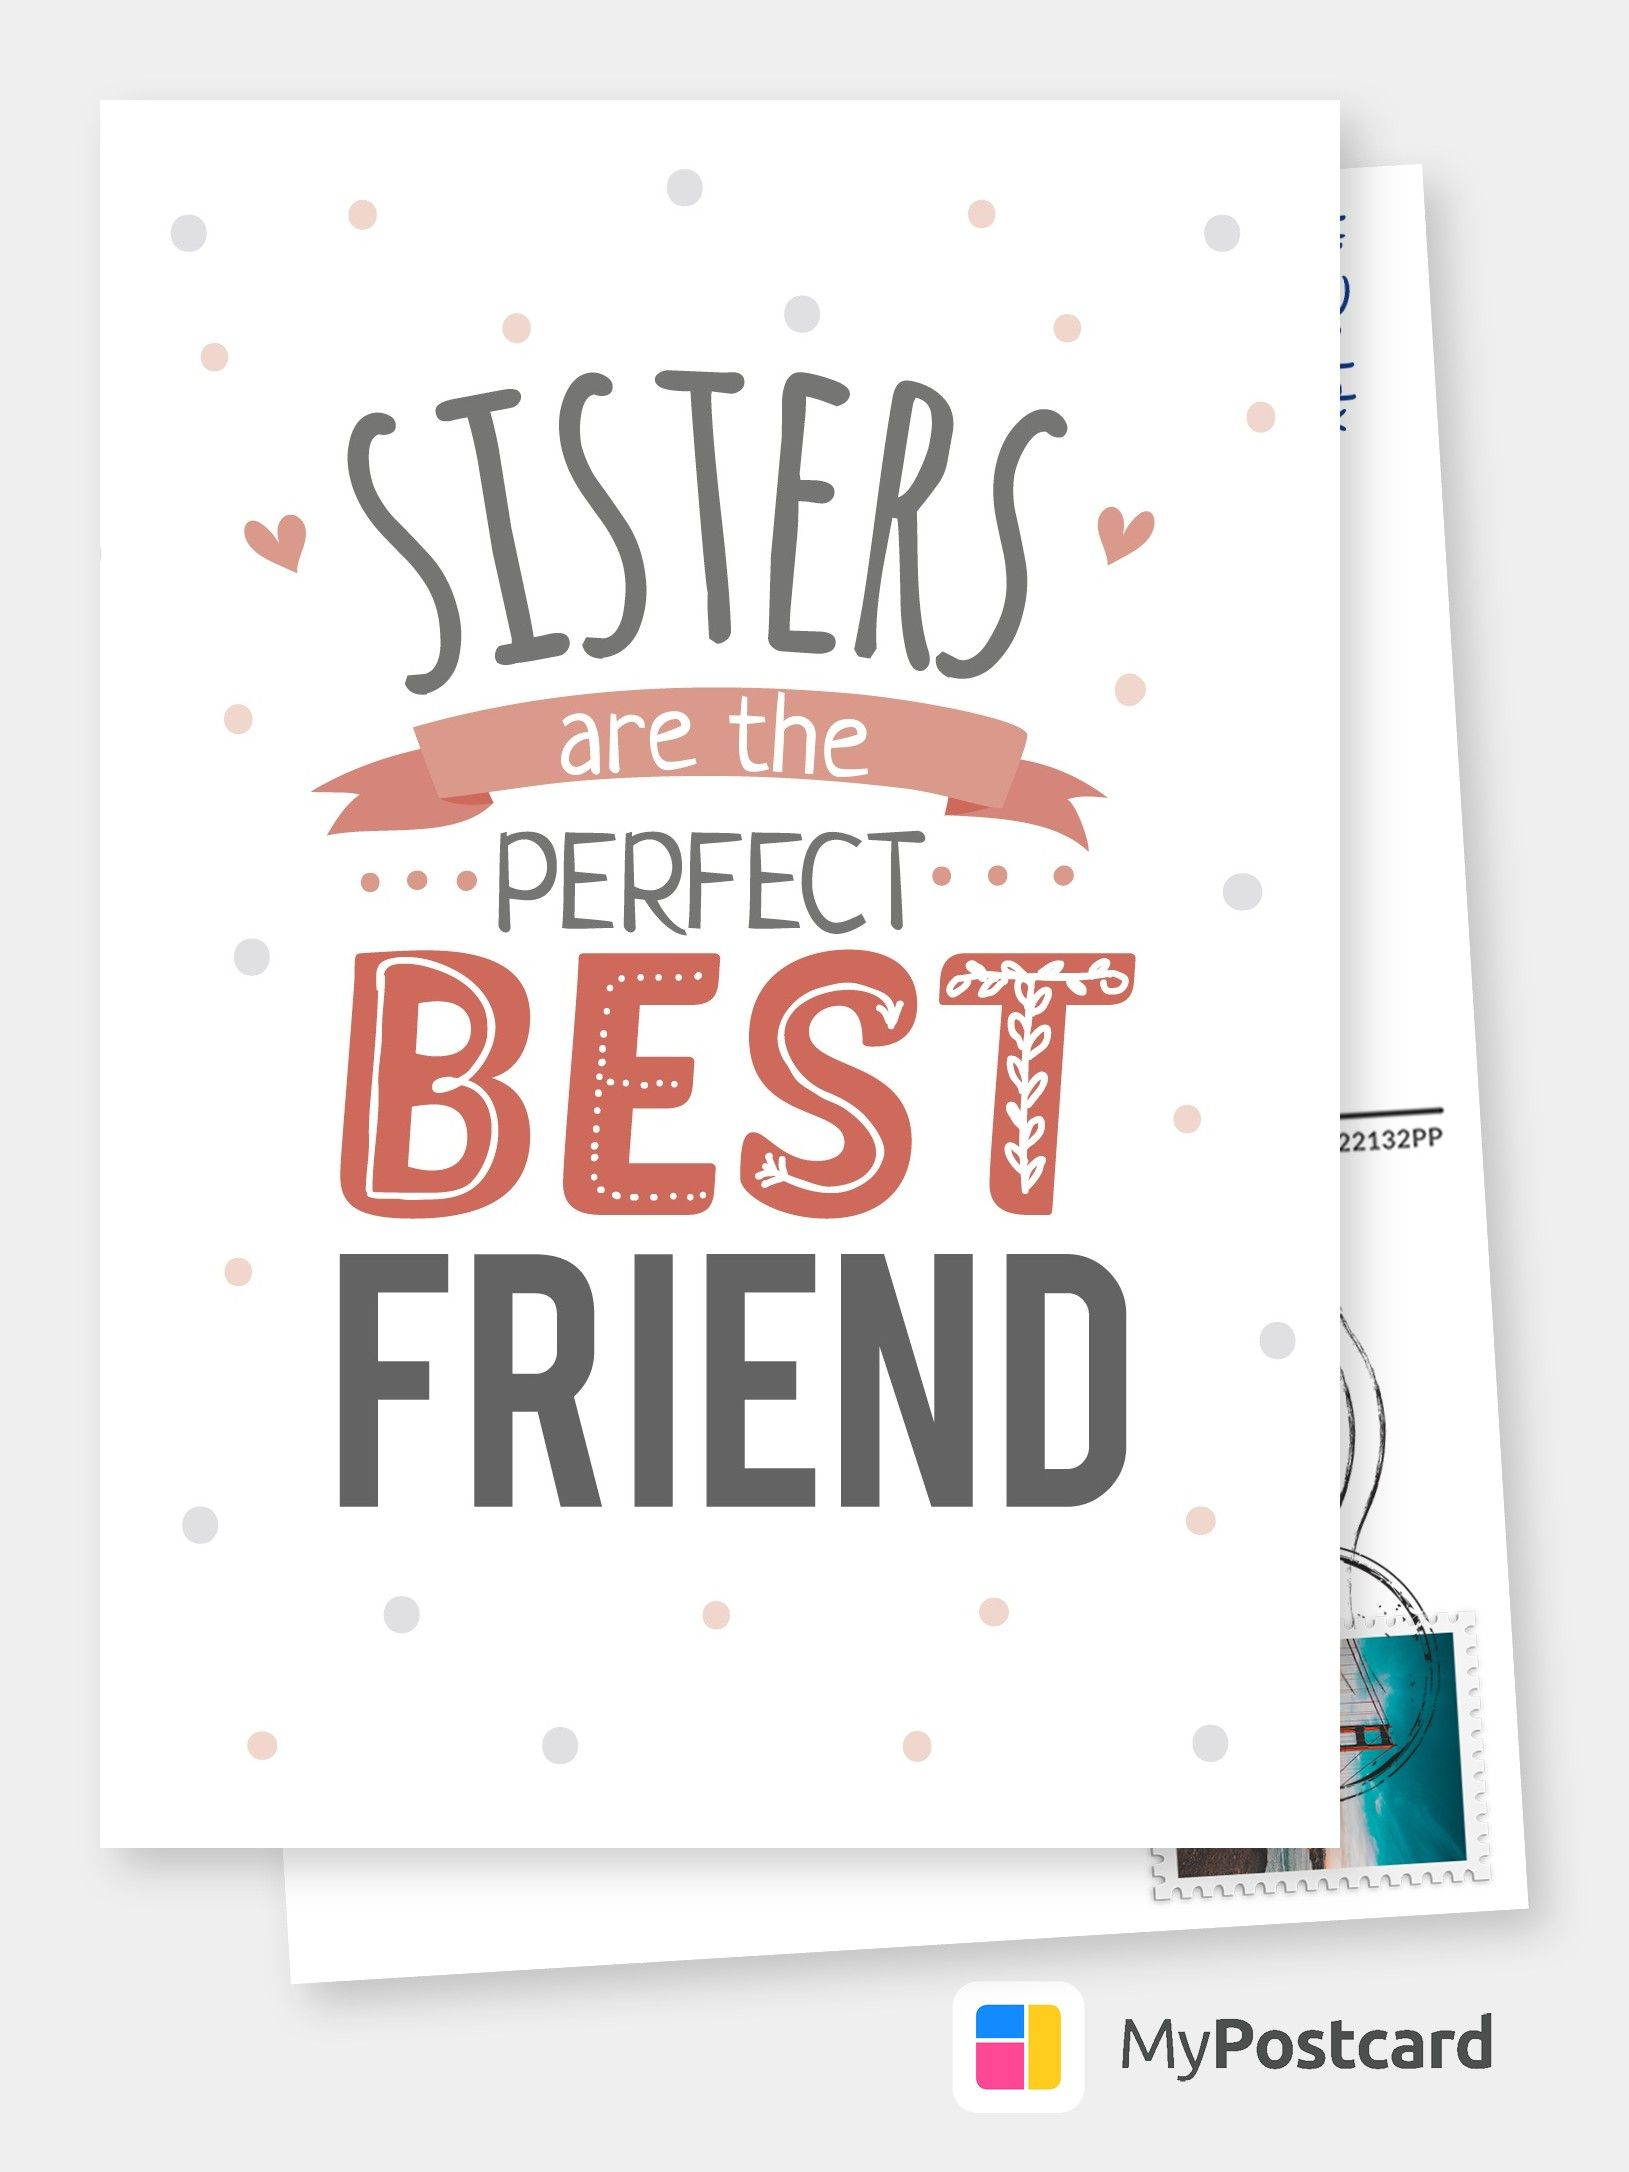 Create Your Own Friendship Cards Free Printable Templates